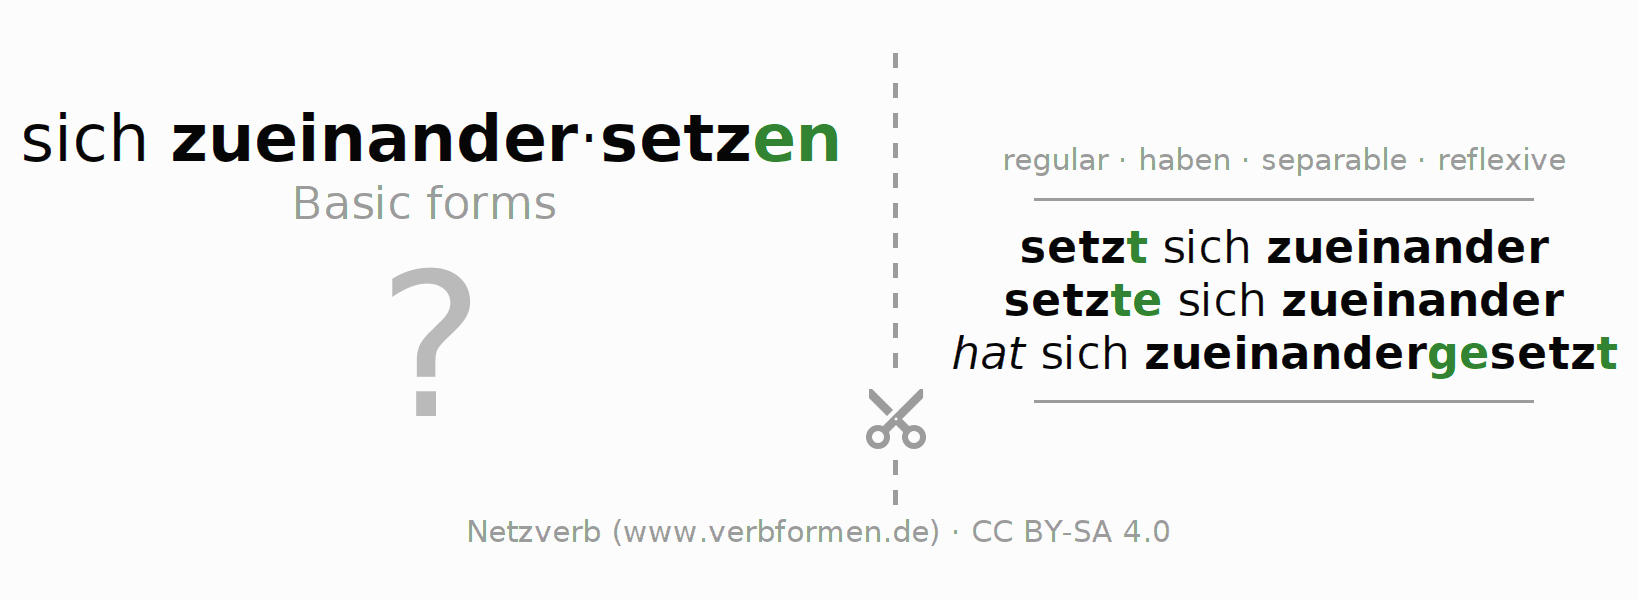 Flash cards for the conjugation of the verb sich zueinandersetzen